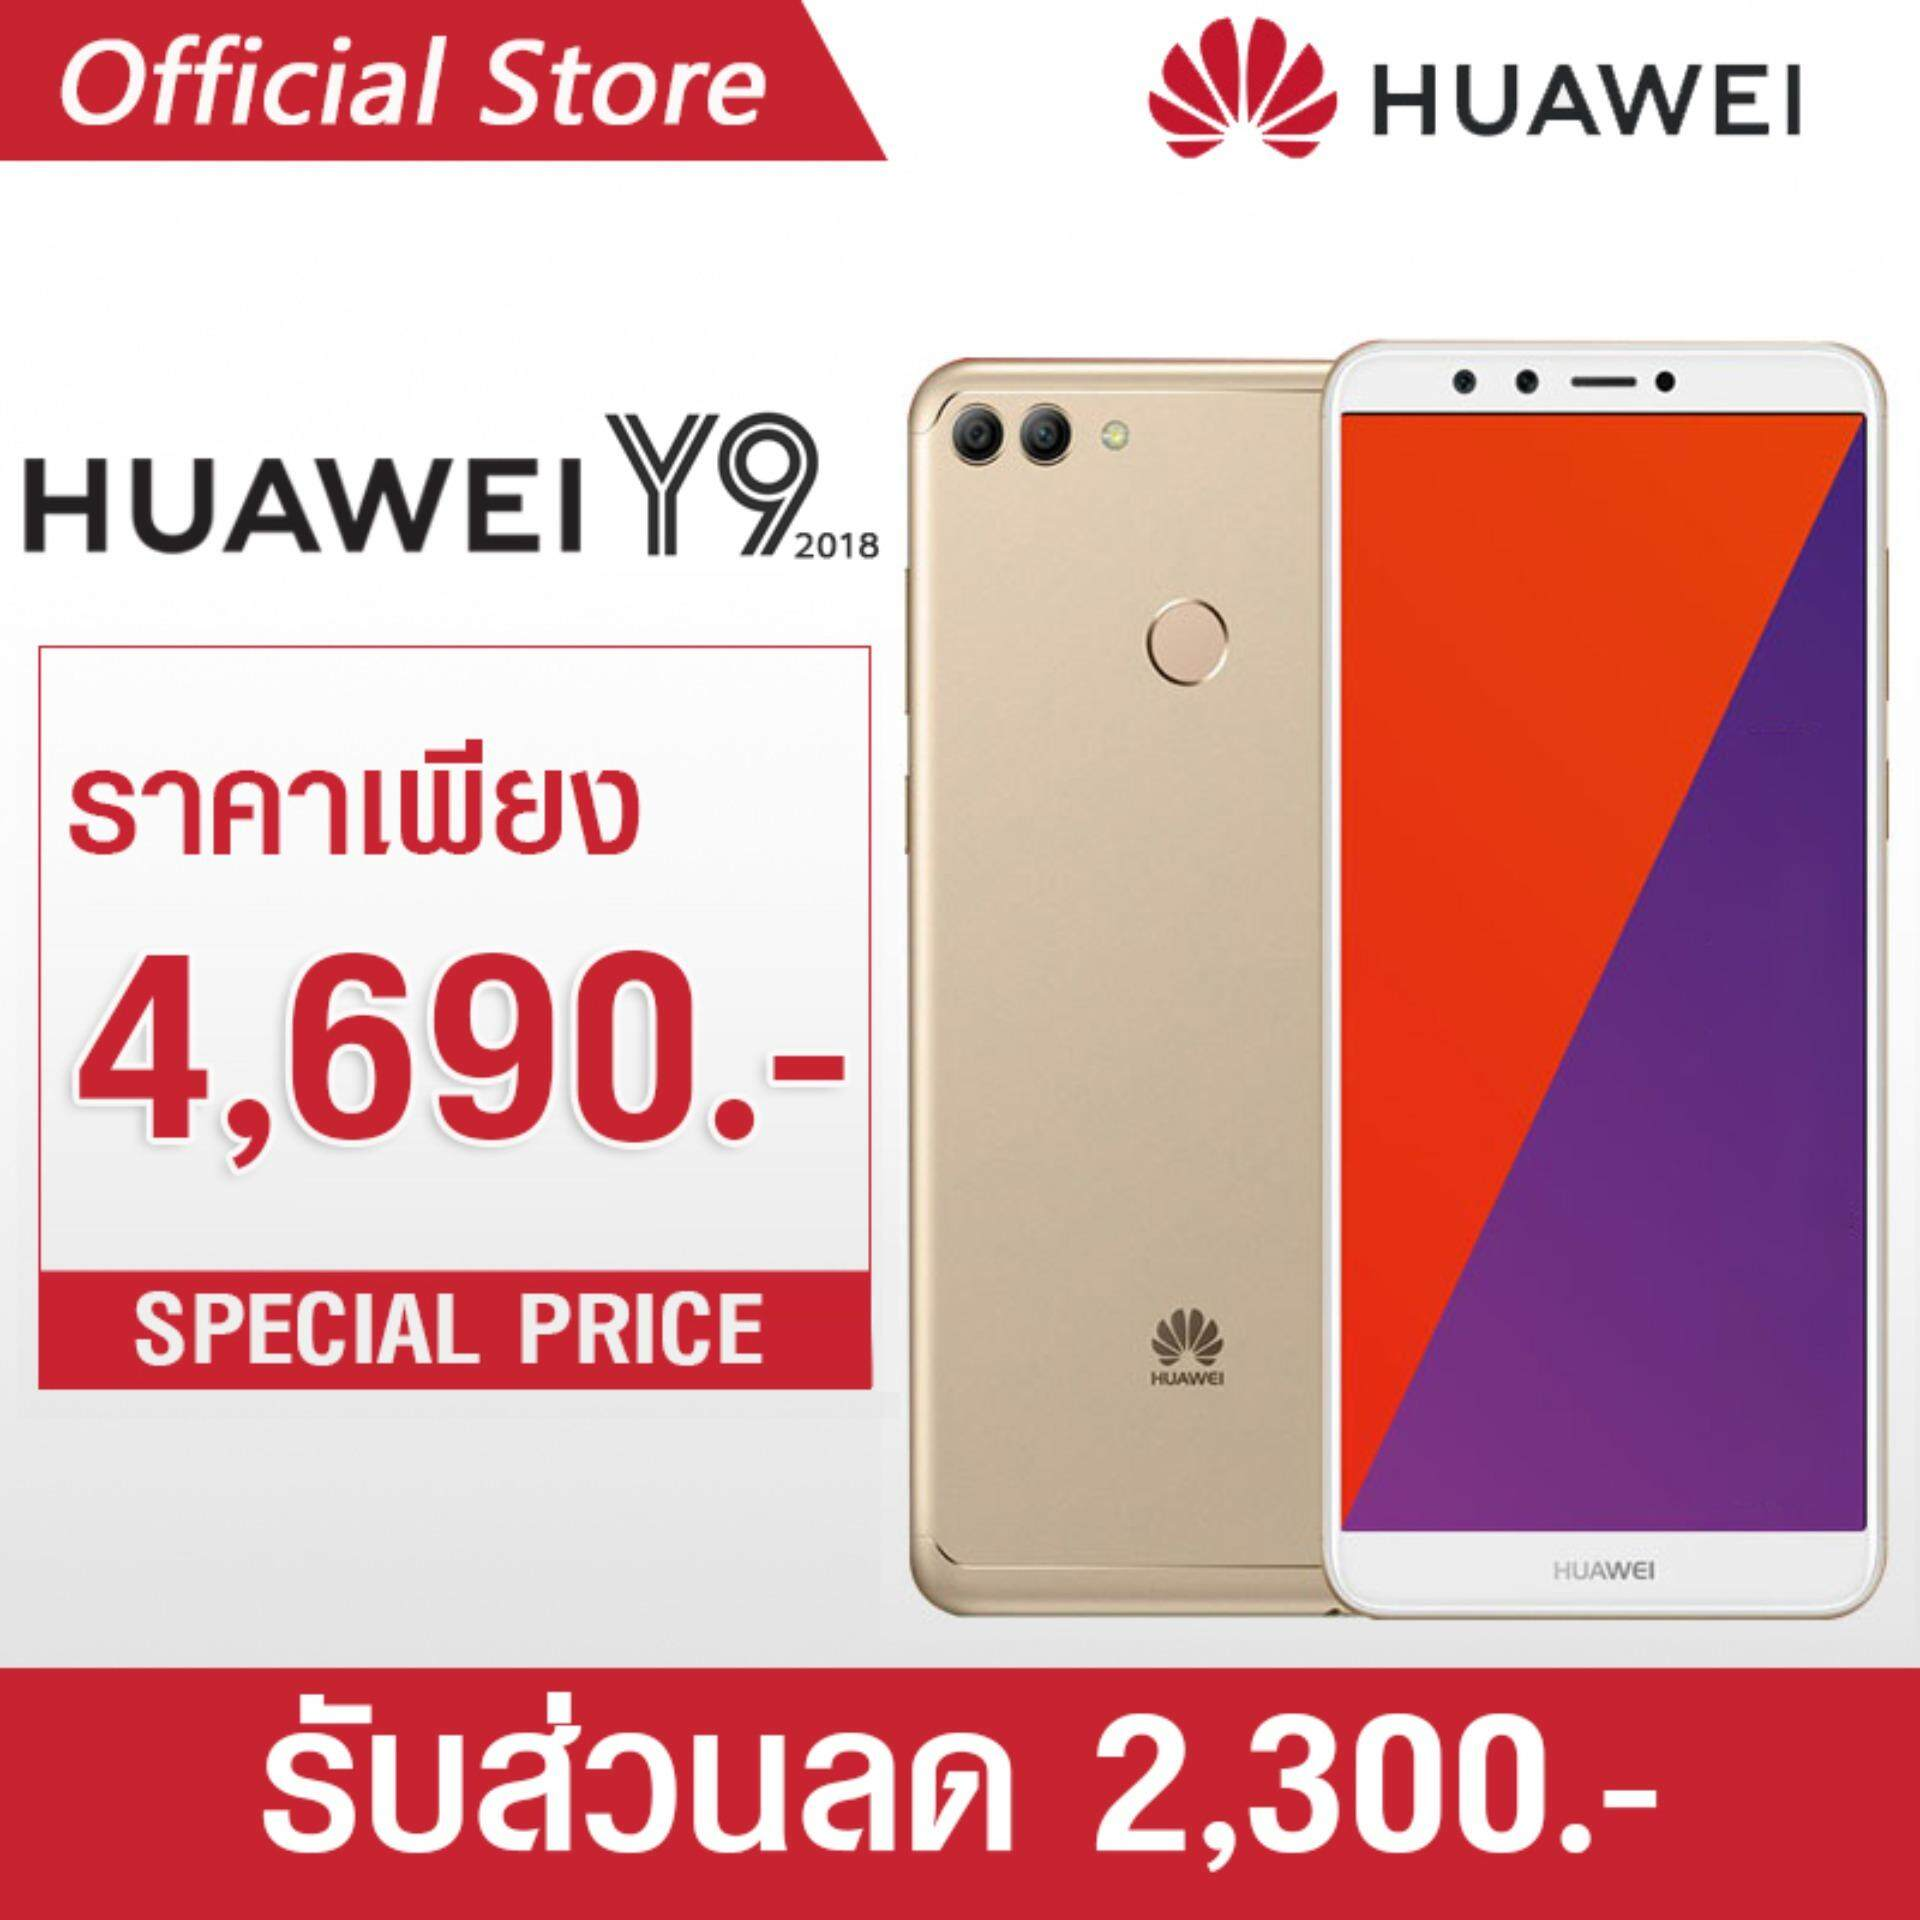 [Huawei official store] Huawei Y9 2018 *3GB+32GB*รับประกัน1ปี*